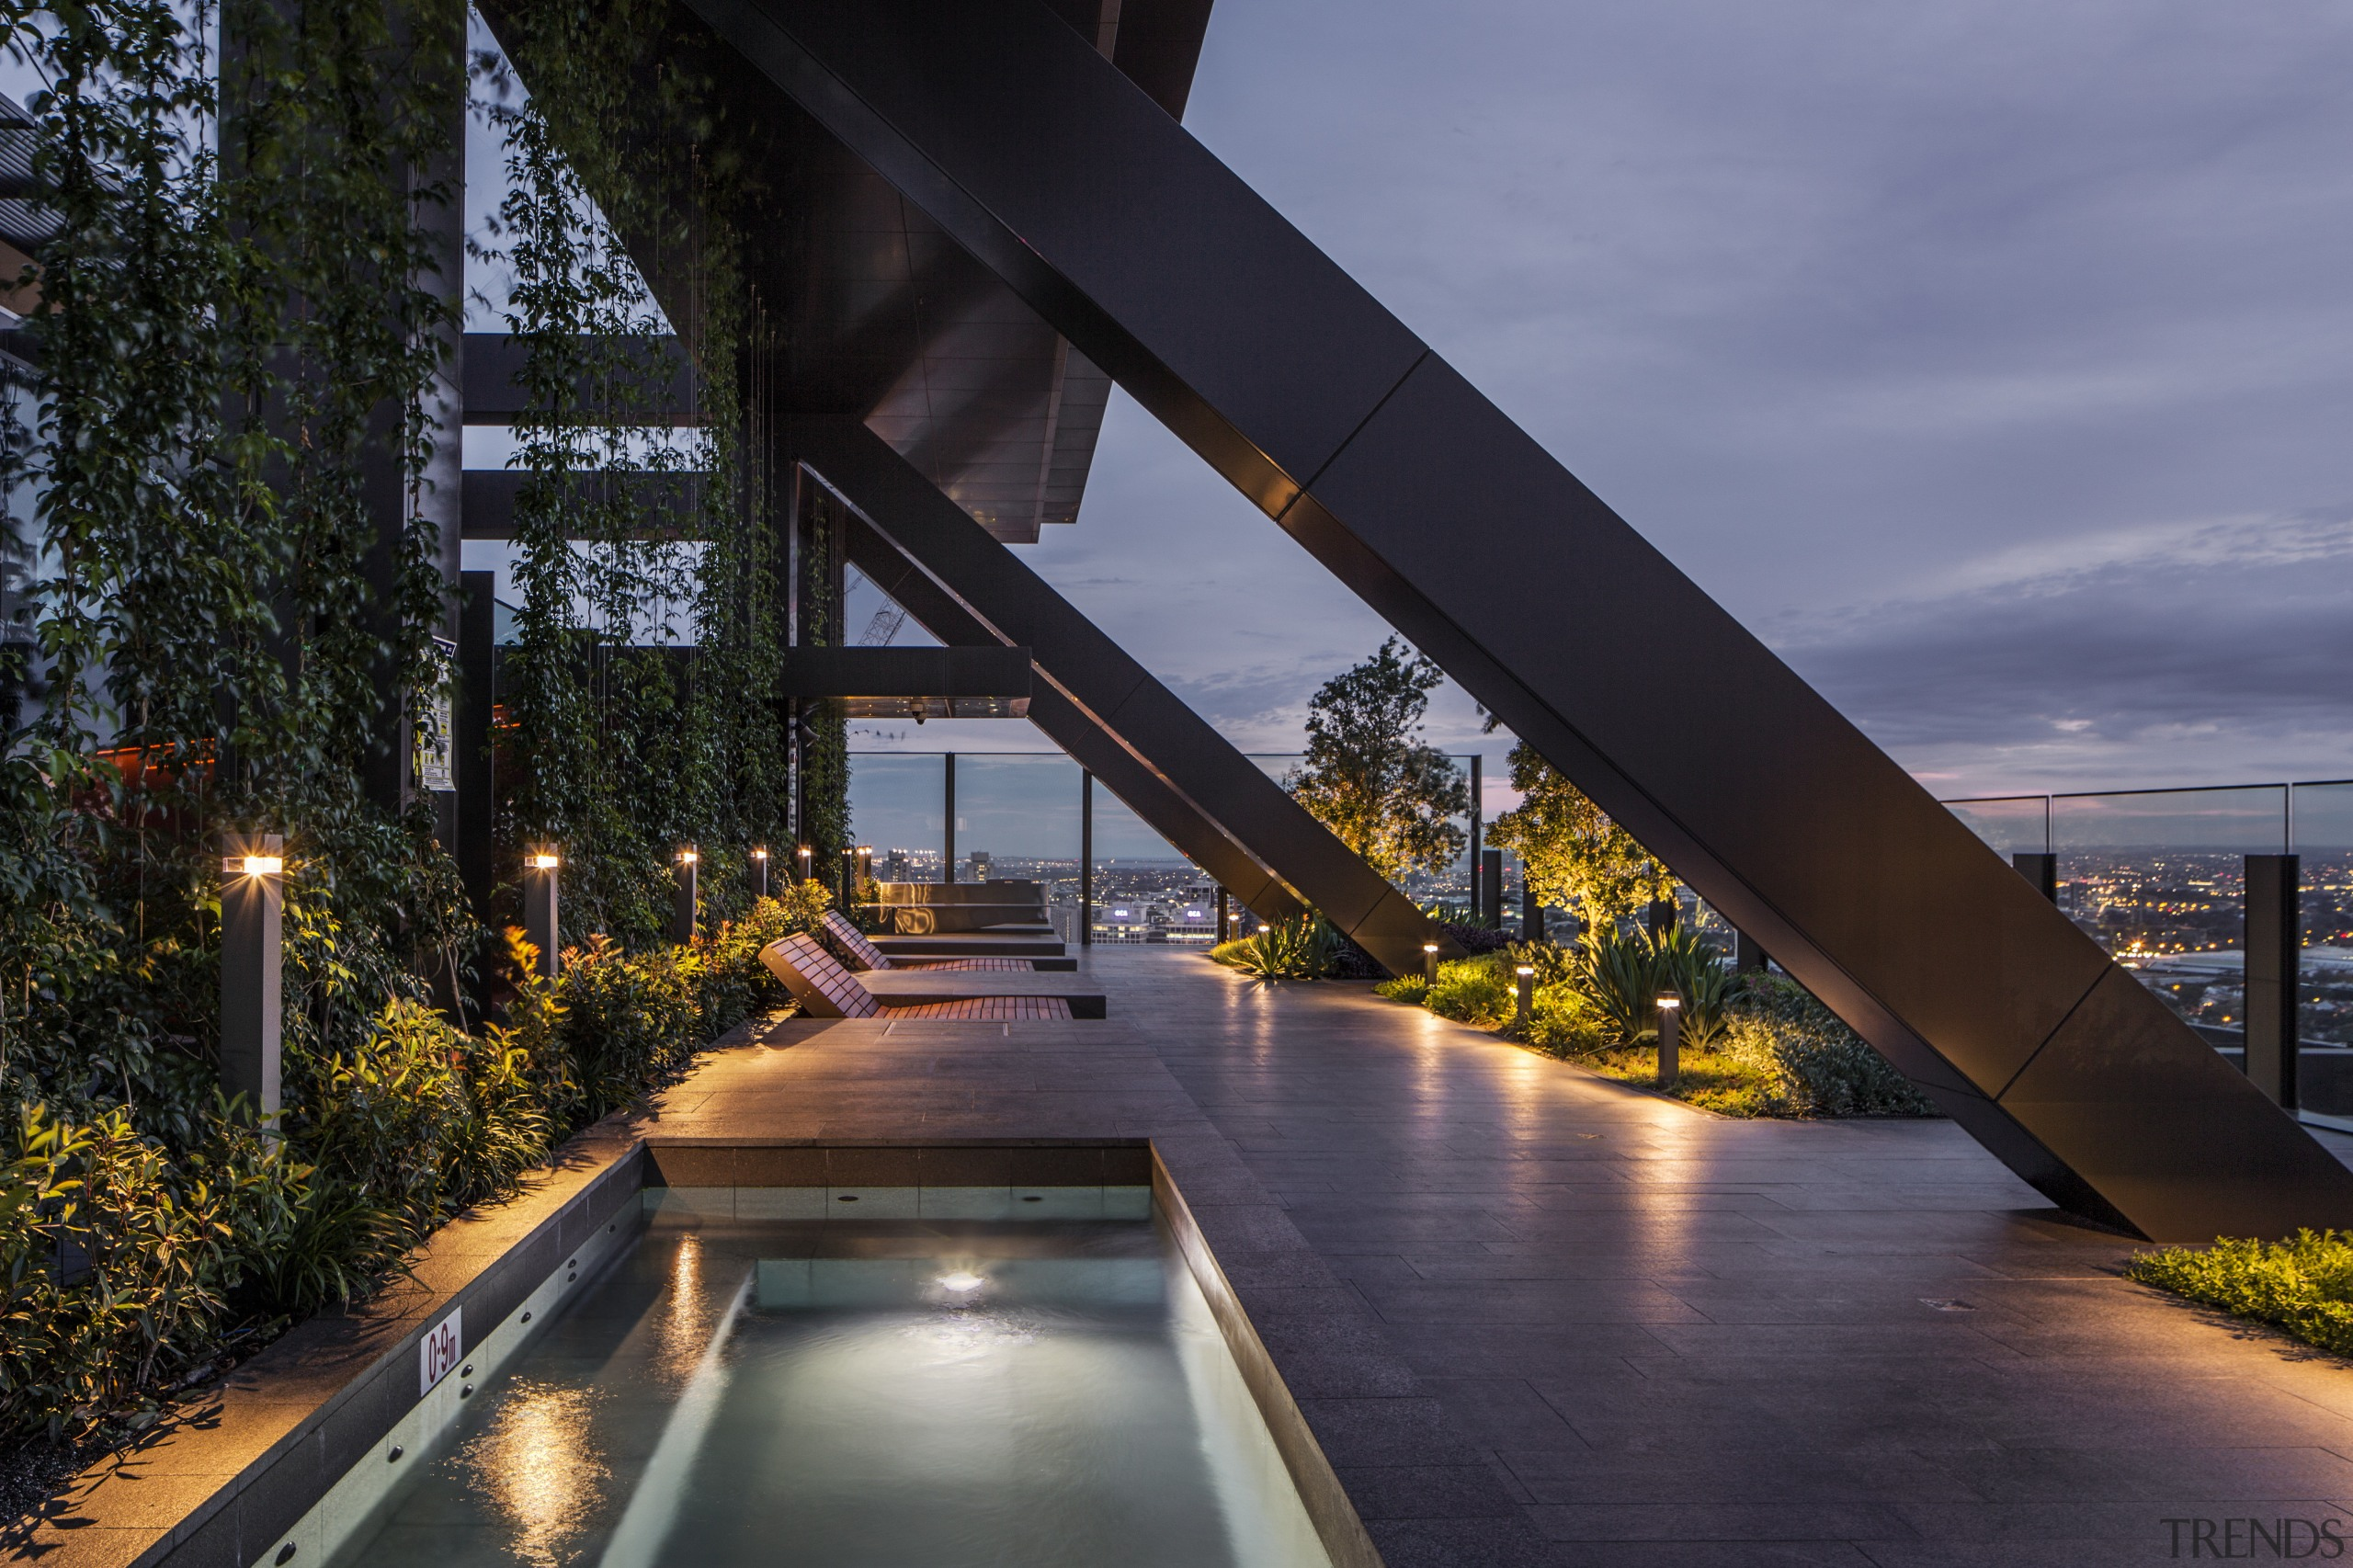 The cantilevered Sky Garden at Level 29 of architecture, bridge, condominium, evening, lighting, real estate, reflection, sky, water, black, blue